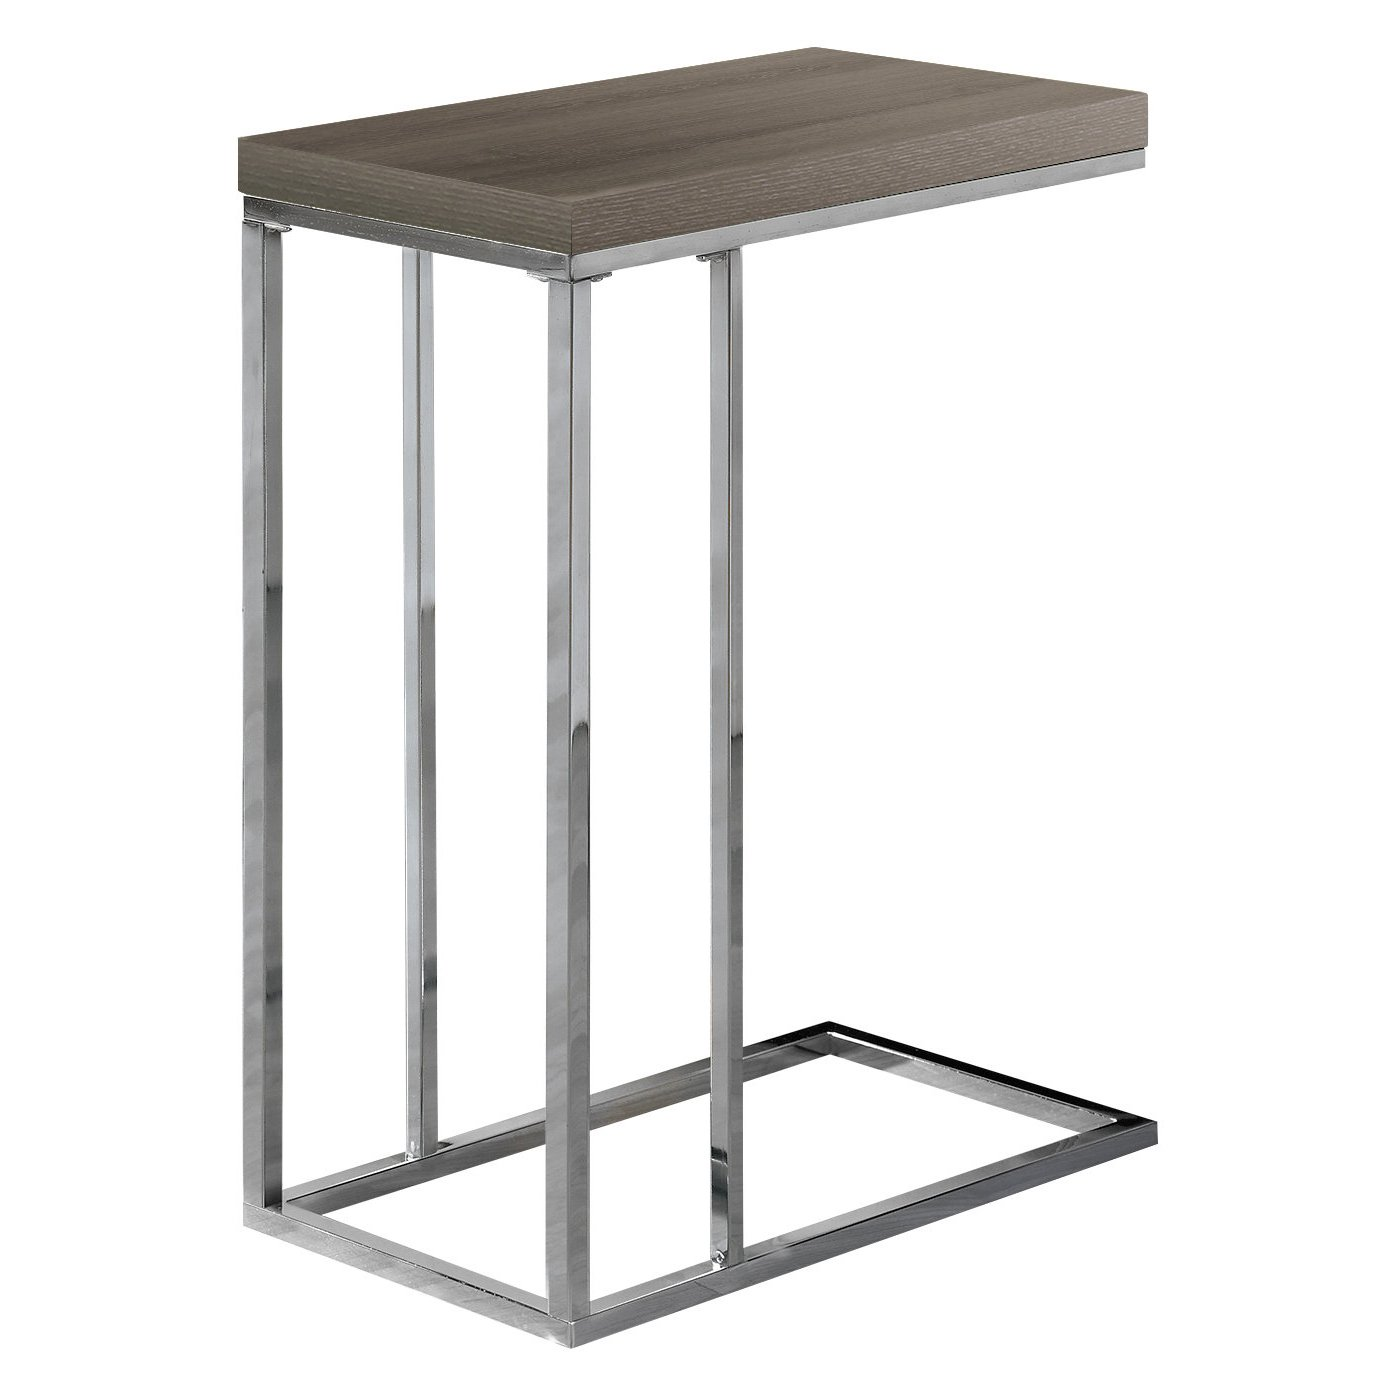 monarch specialties accent table chrome metal mirrored dark taupe kitchen dining wood end with legs beach themed home decor pull out sofa round outdoor tablecloth coffee bases for